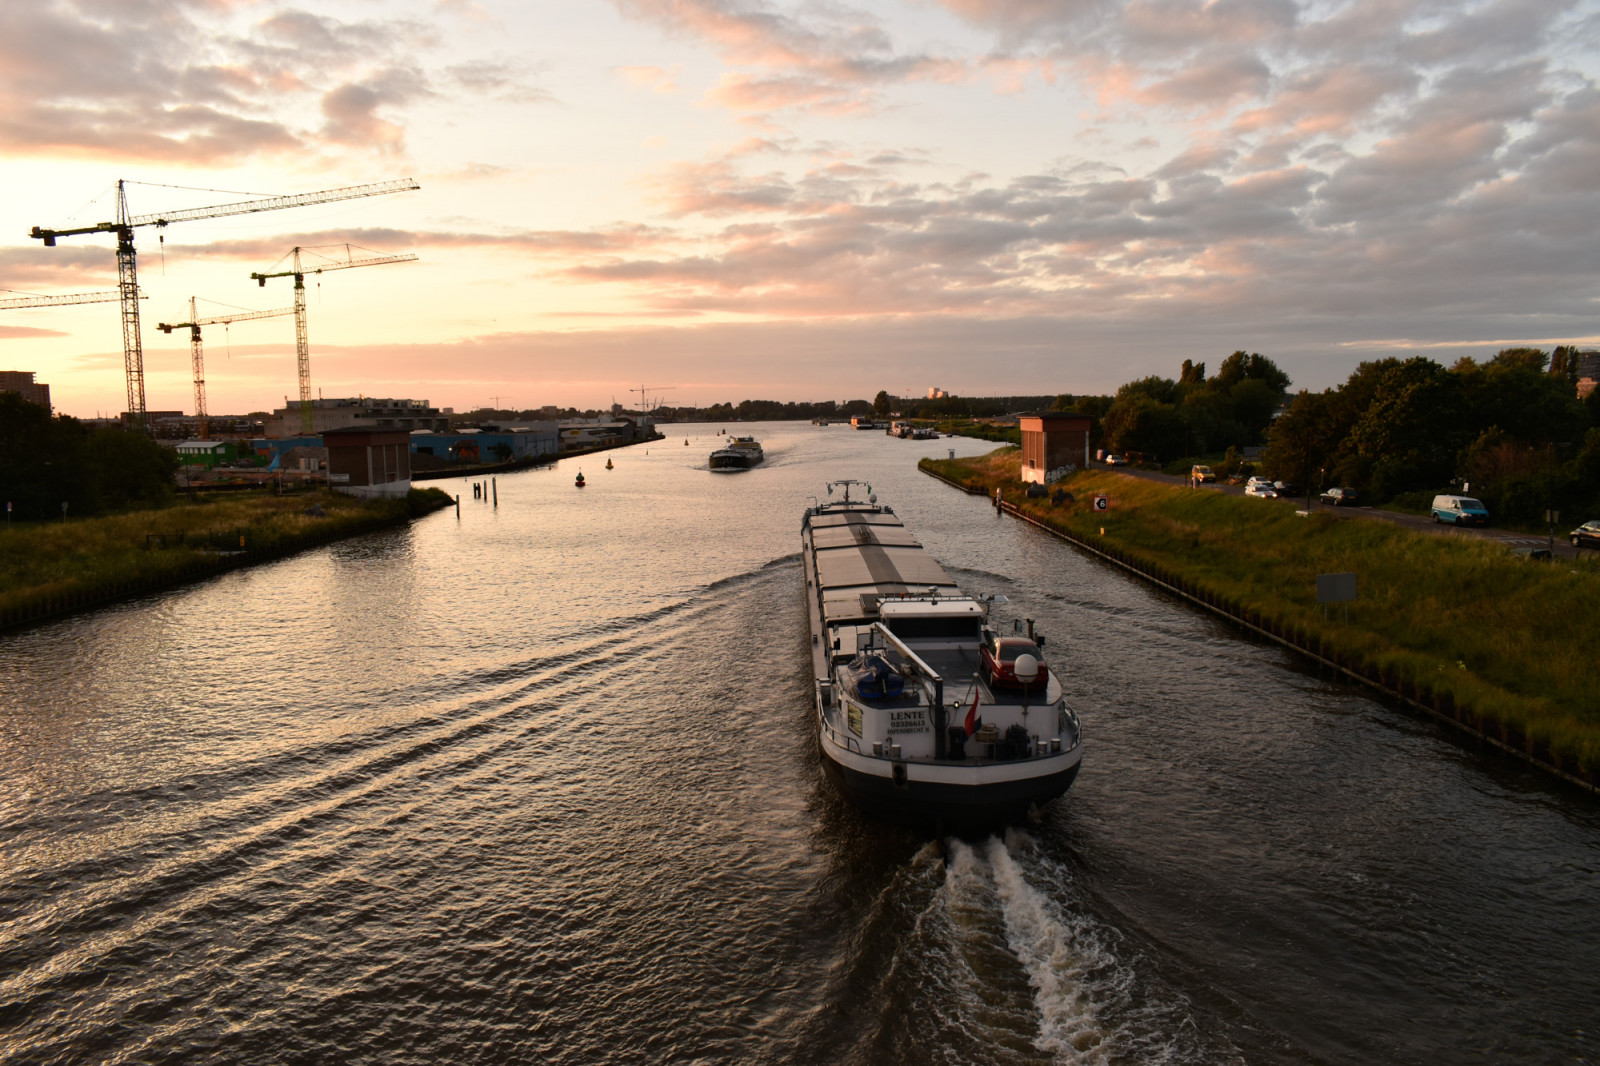 sky-above-canal-freigh-ship-dutch-canals